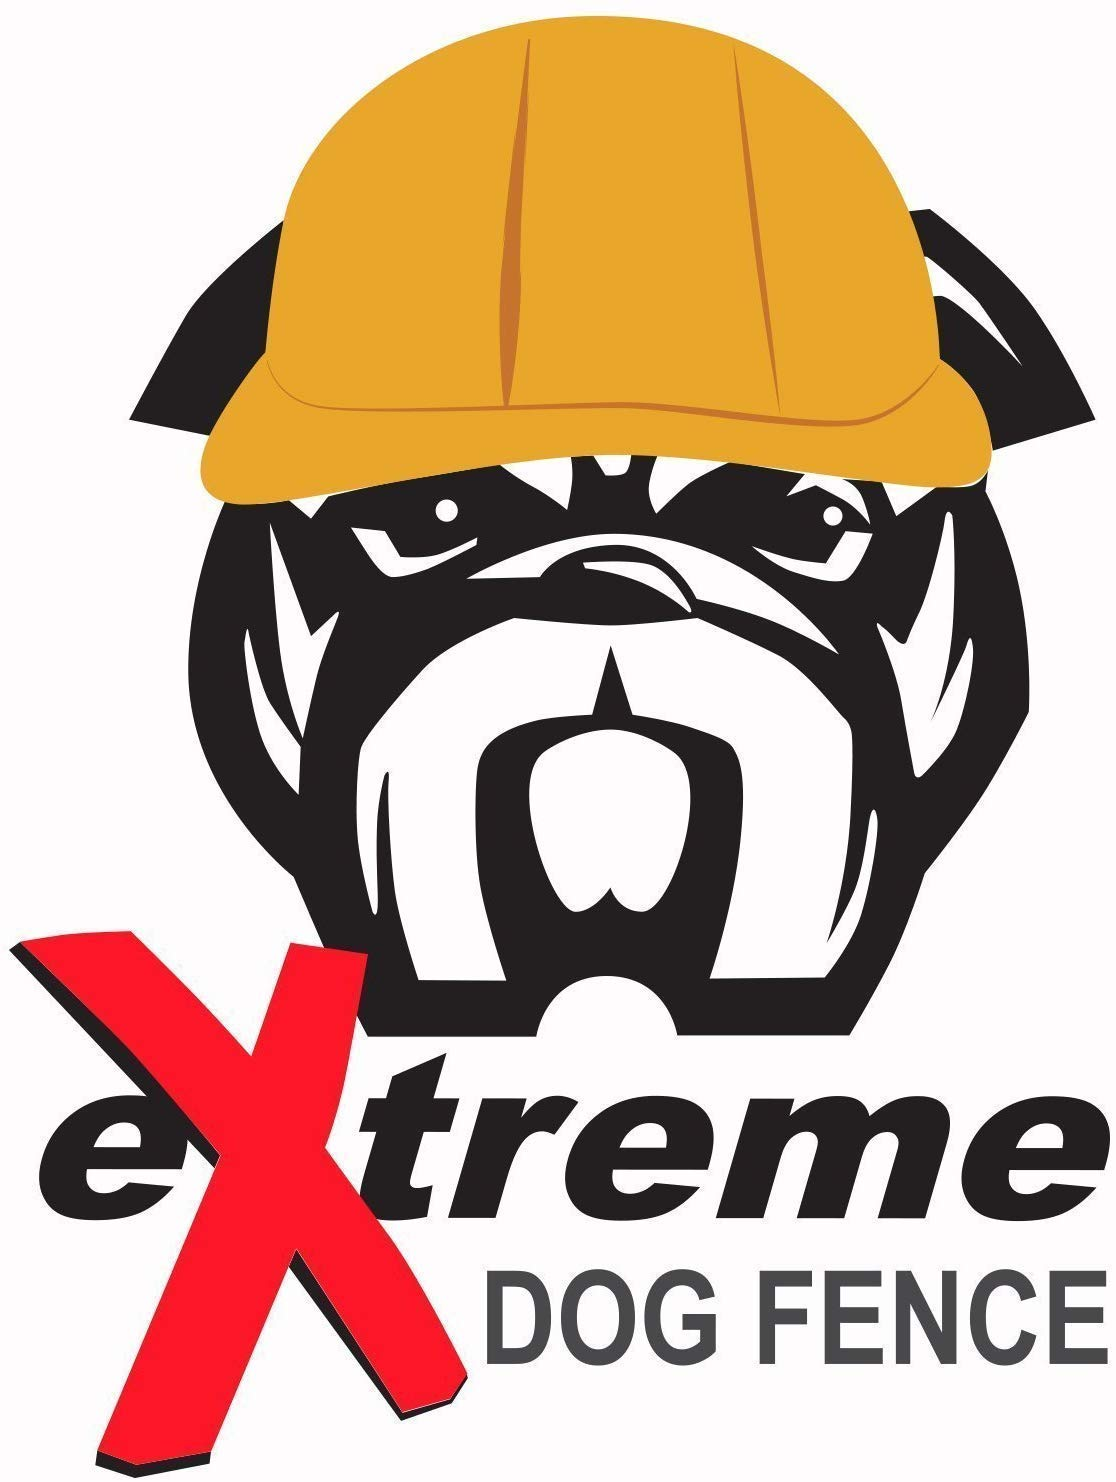 Extreme Dog Fence Wire 14 Gauge 2500 Ft - Heavy Duty Pure Solid Copper Core Electric Dog Fence Boundary Wire - Compatible with All In-Ground Pet Fence Systems by Extreme Dog Fence